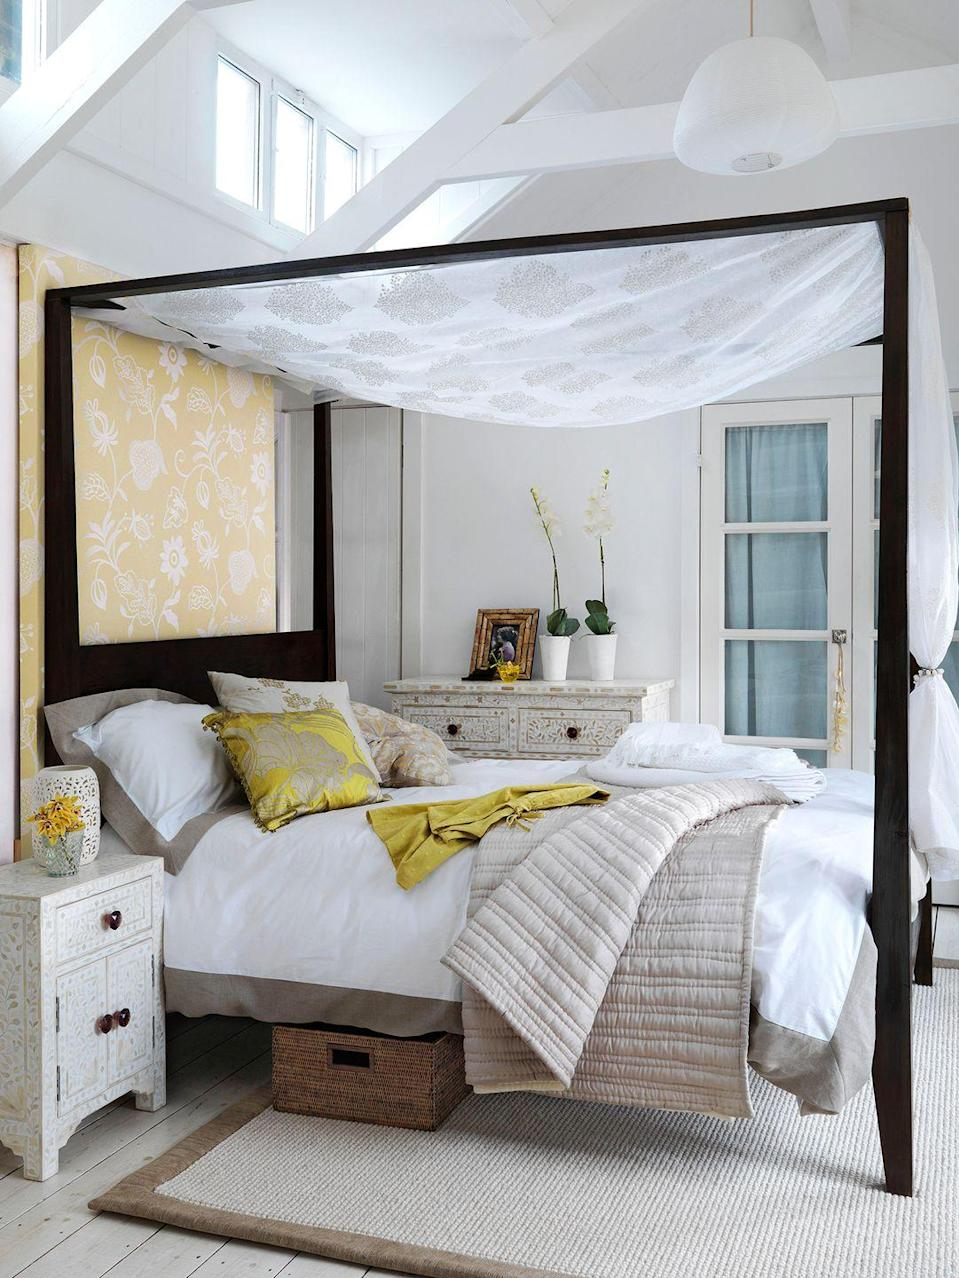 <p>For an instant romantic touch, drape sheer fabric across the upper portion of a canopy bed.</p>